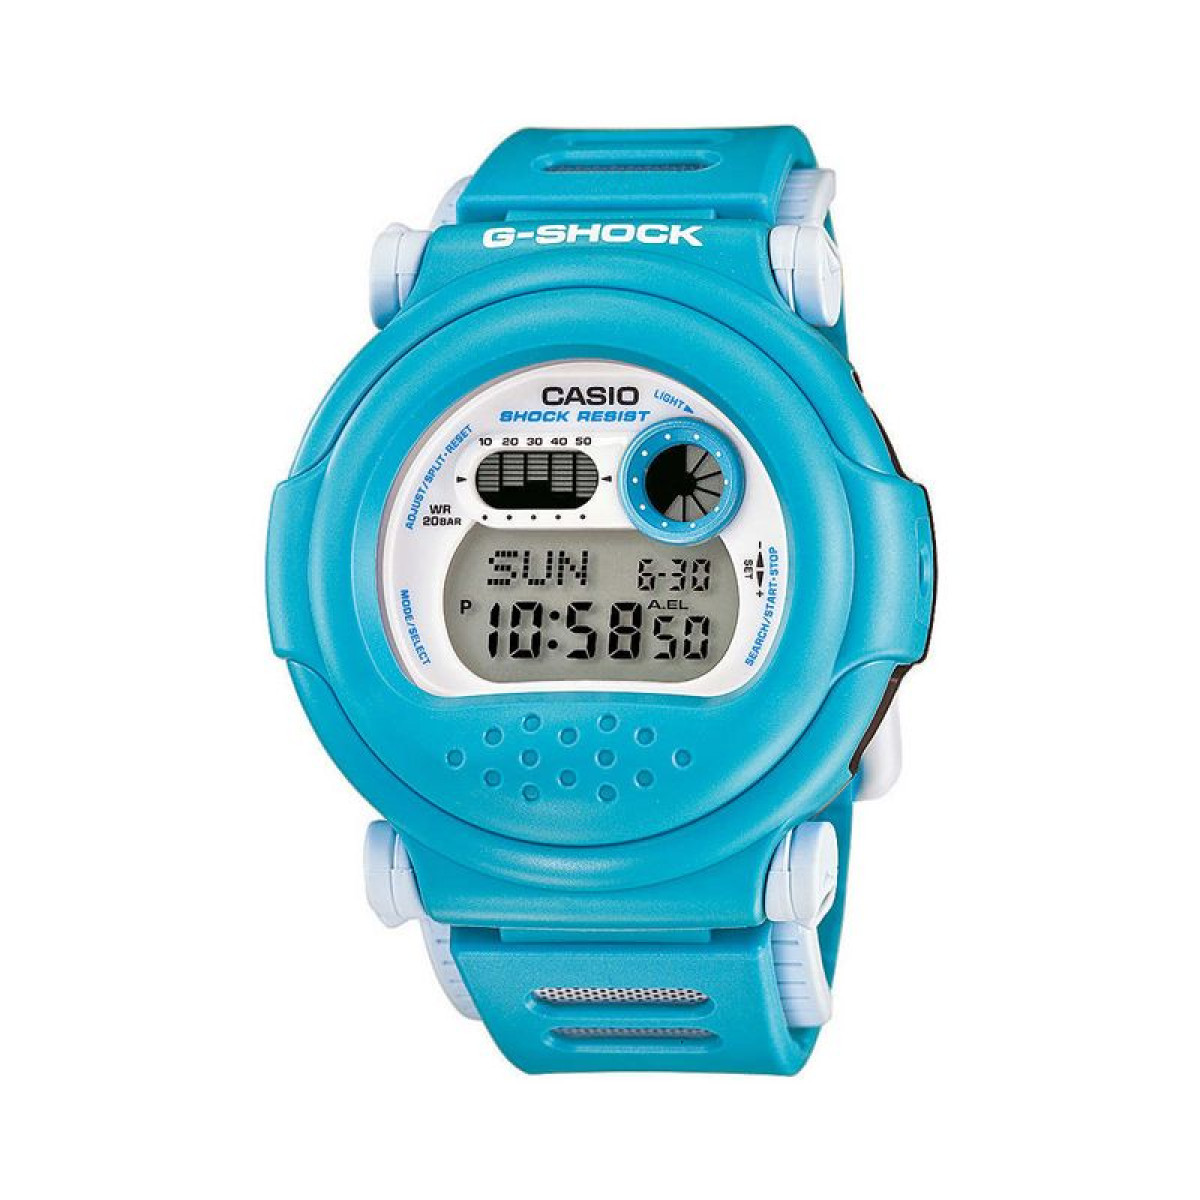 Часовник Casio G-Shock G-001SN-2ER